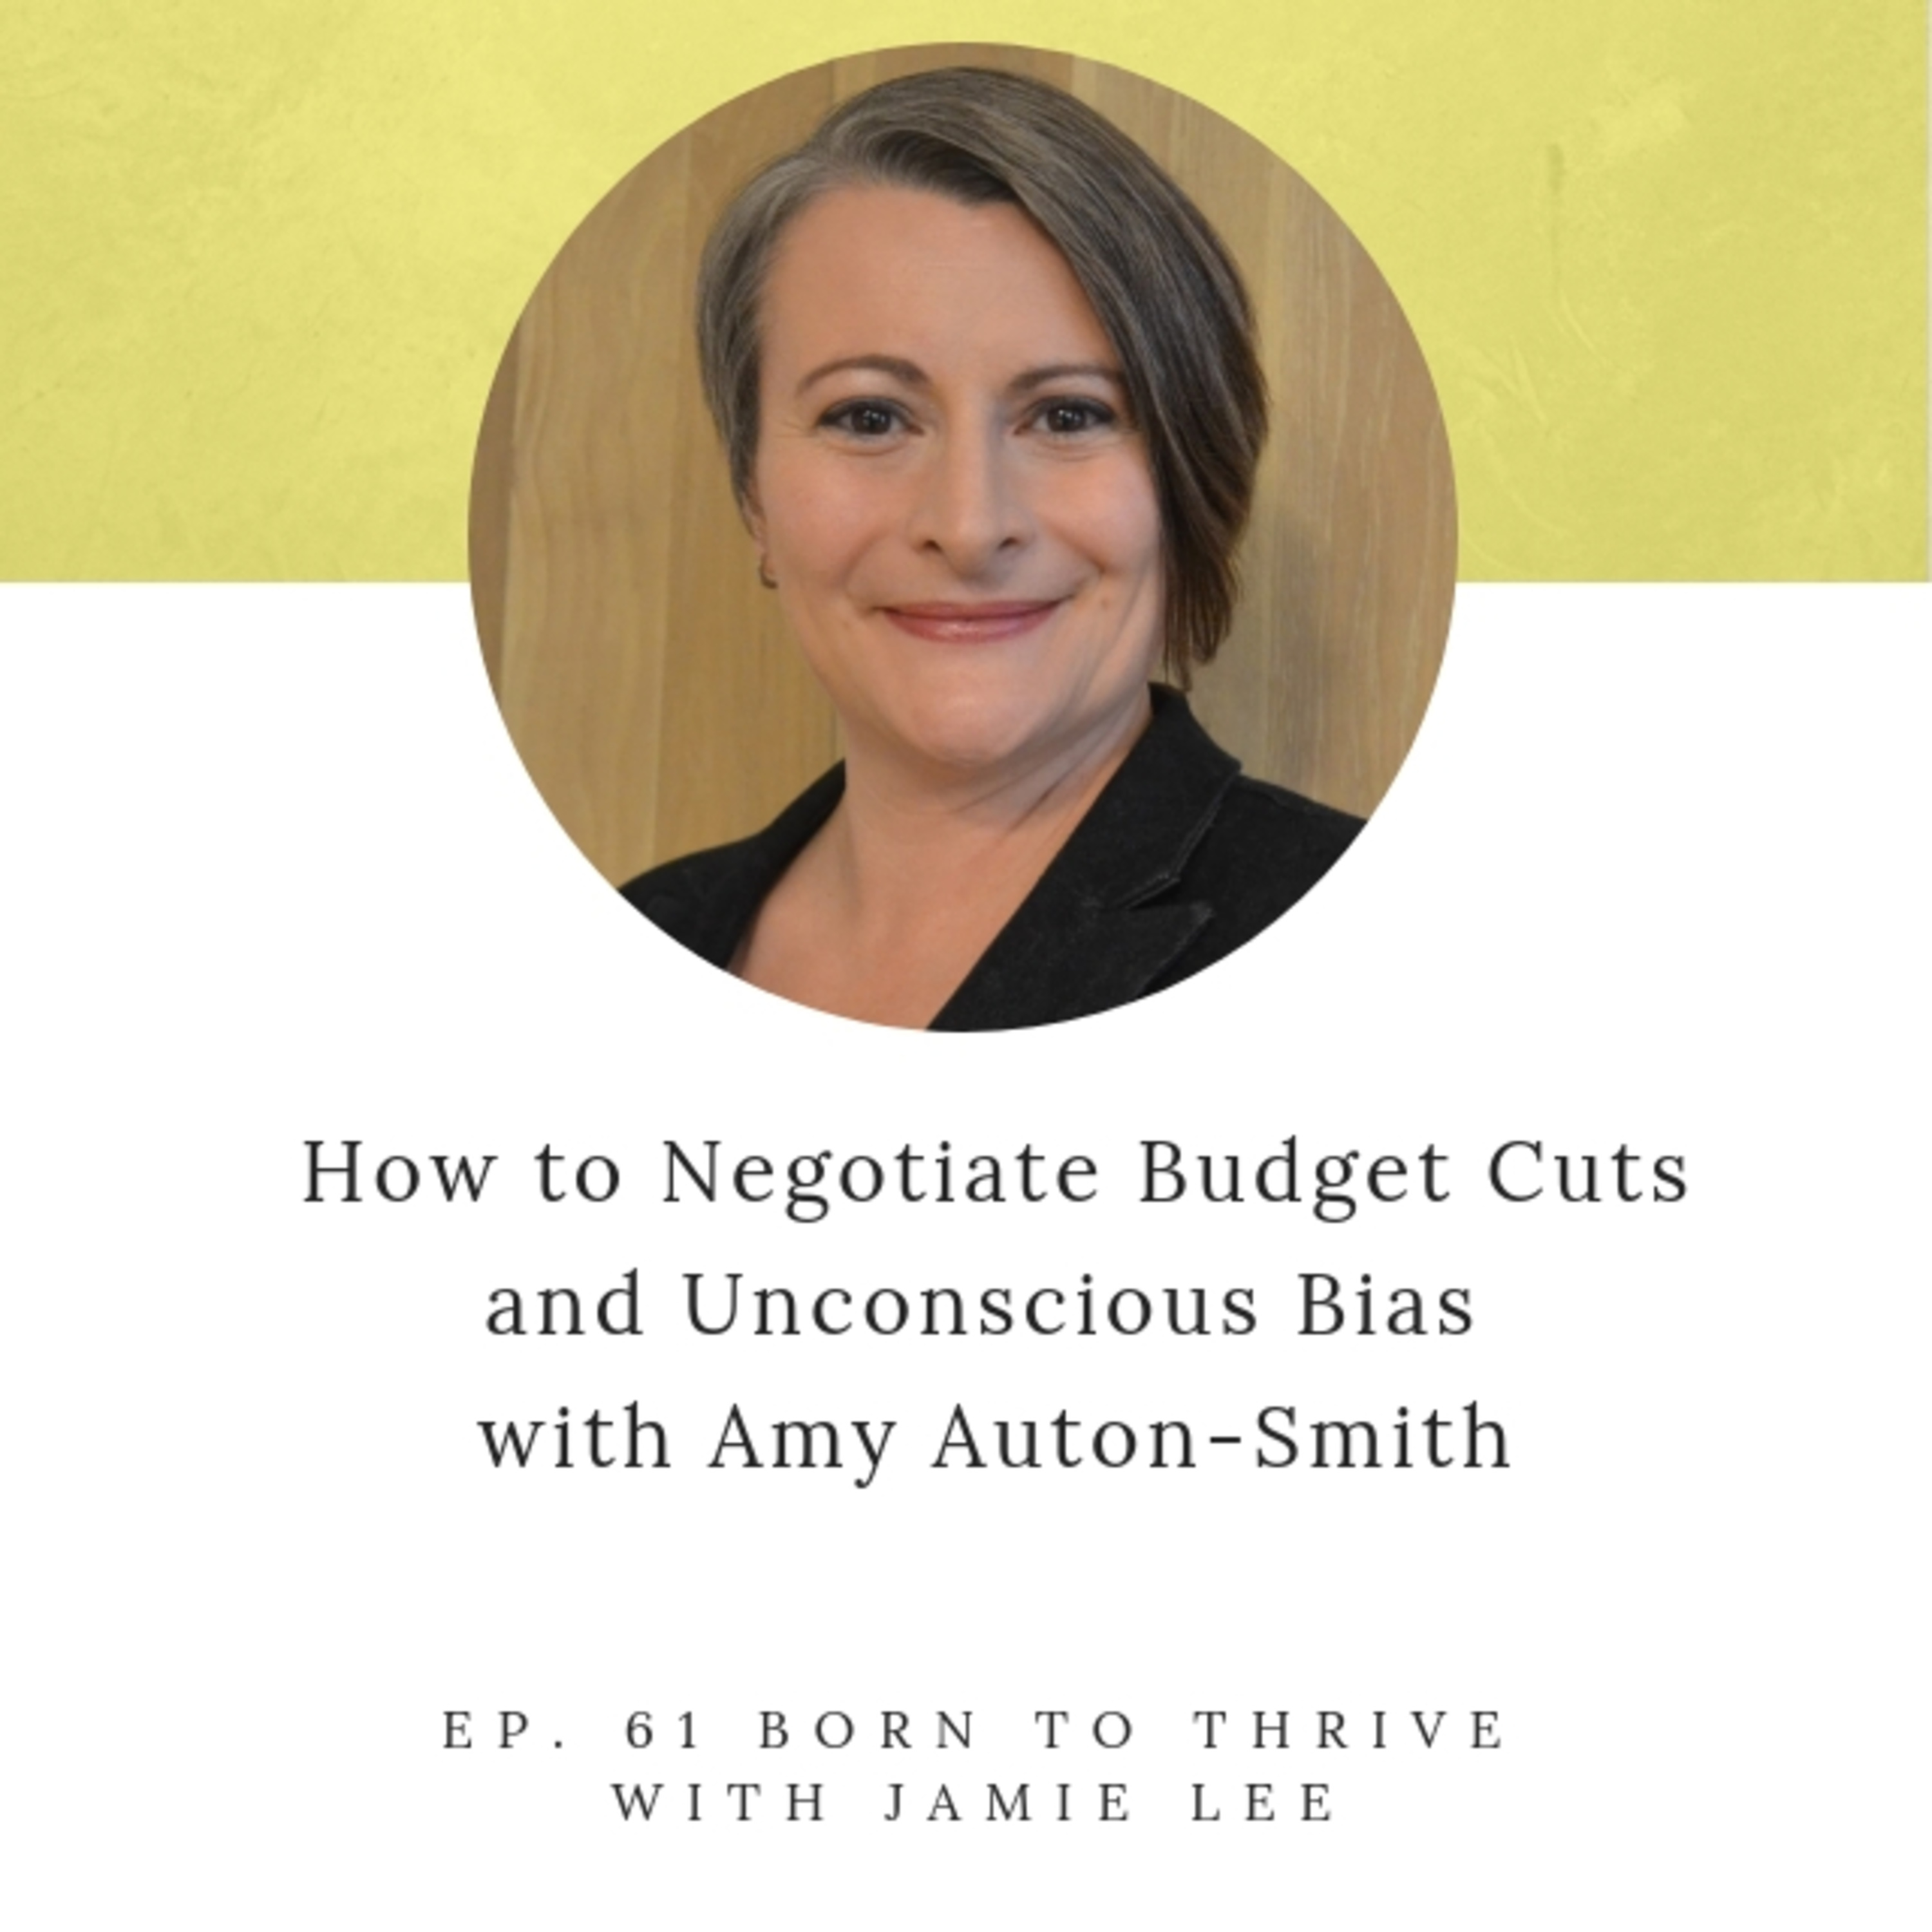 Ep. 61 How to Negotiate Budget Cuts and Unconscious Bias with Amy Auton-Smith